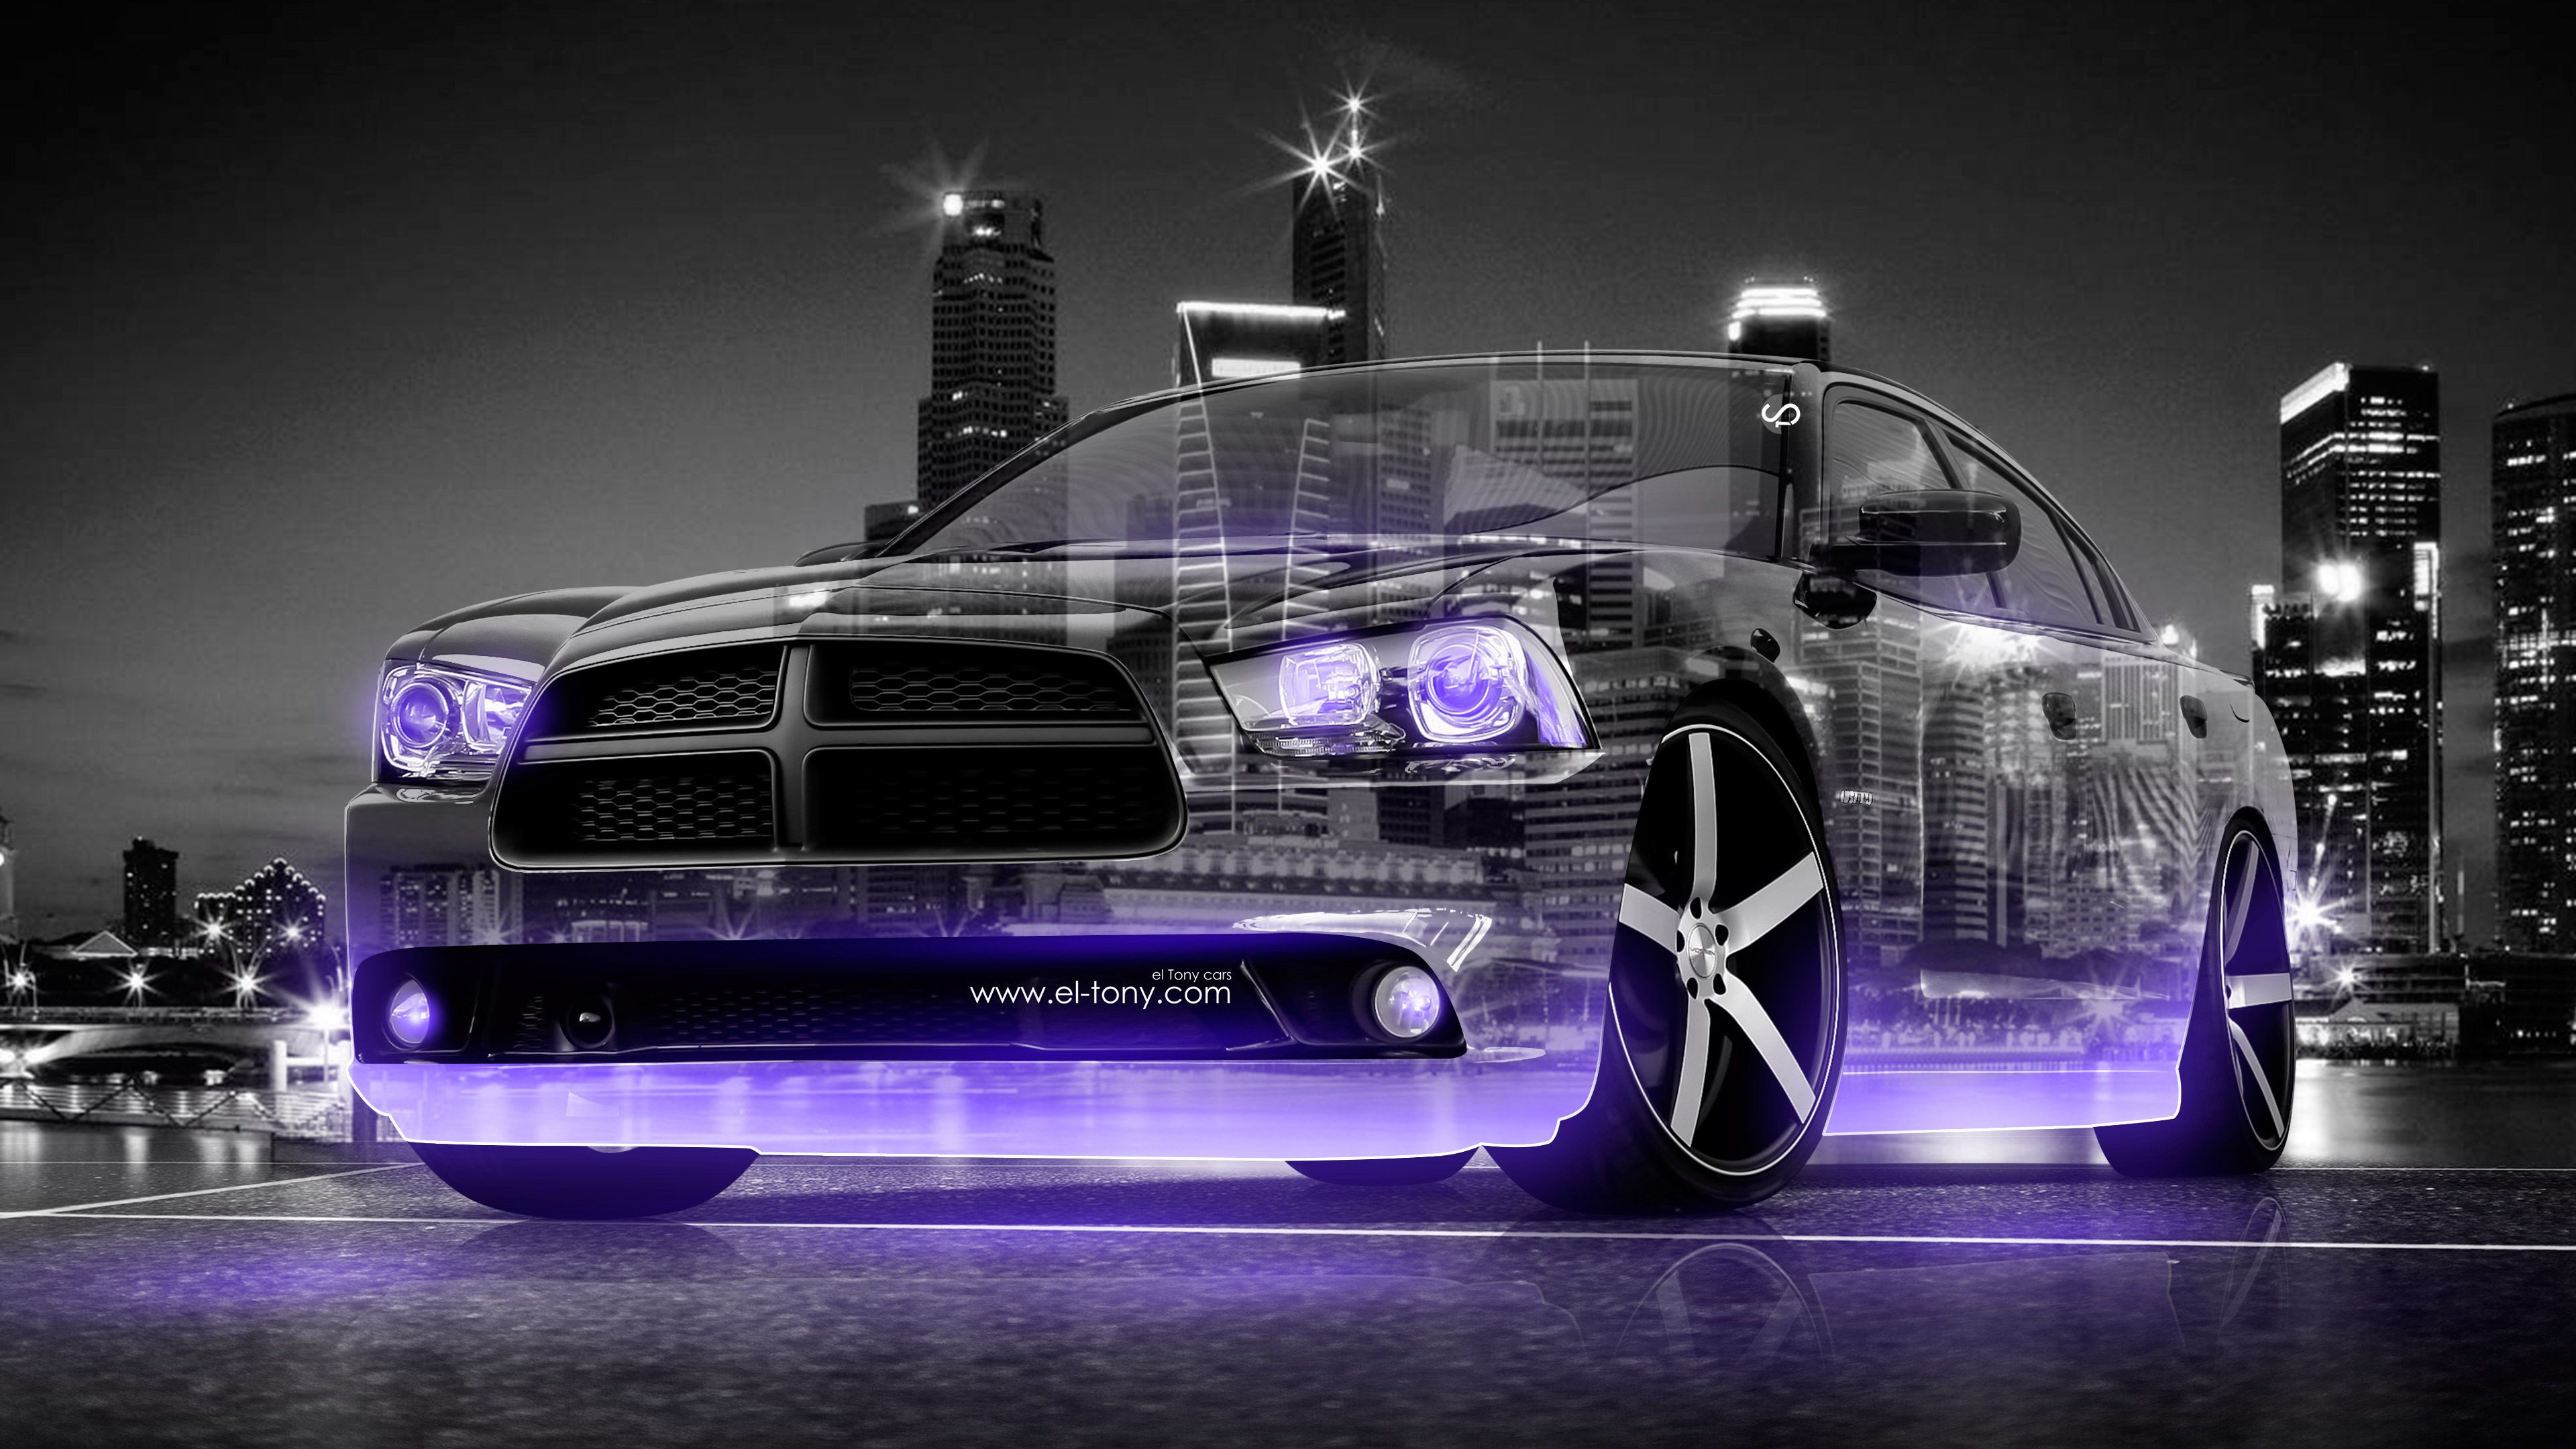 Charmant Dodge Charger Daytona Muscle Anime Bleach Aerography City Car 2015 Green Neon Effects 4K Wallpapers Design By Tony Kokhan Www.el Tony.com Image  | Pinterest ...